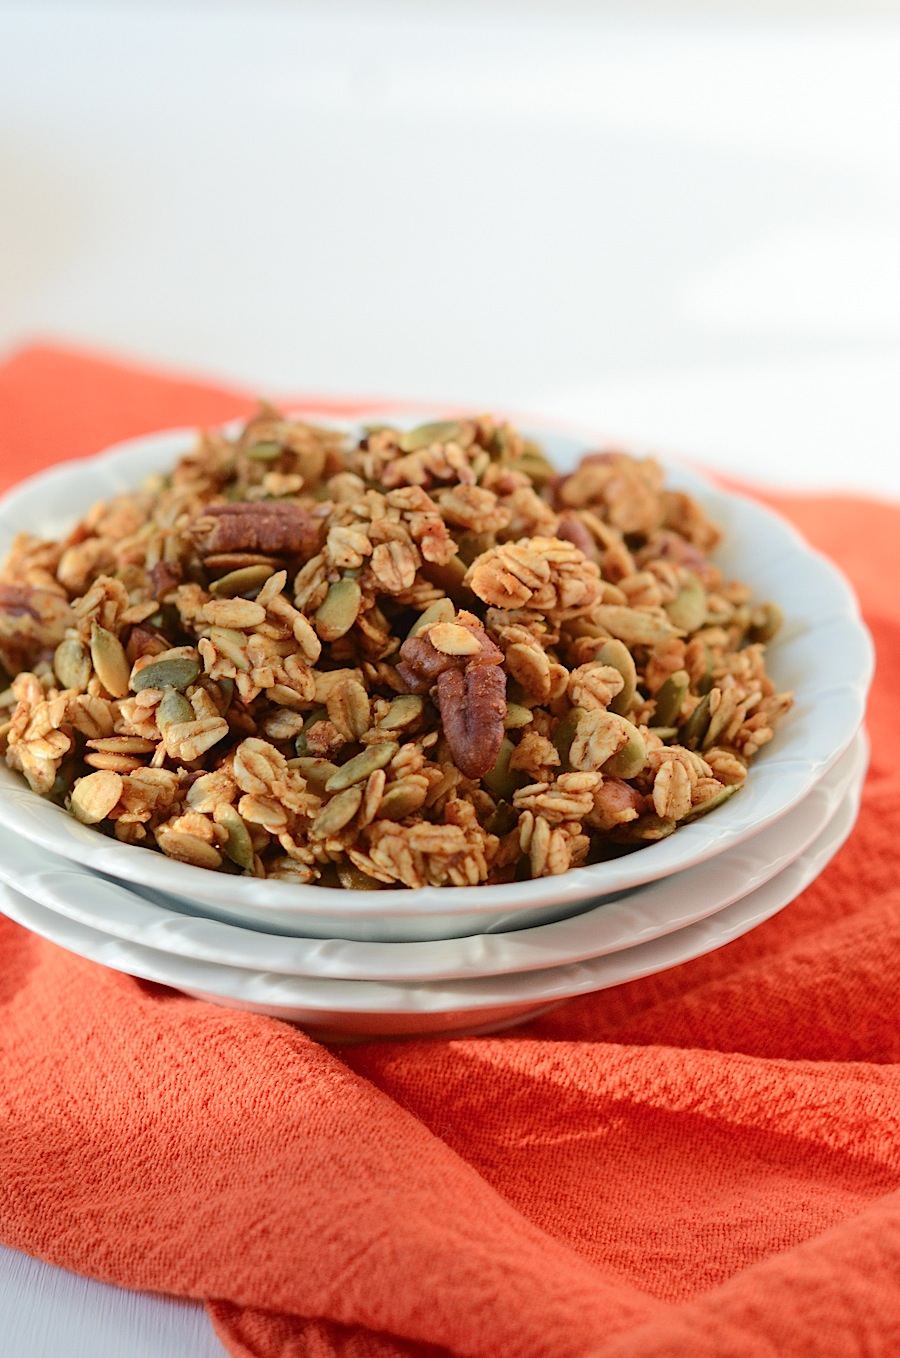 Healthy Pumpkin Pie Granola Recipe - This tasty recipe is made without ...